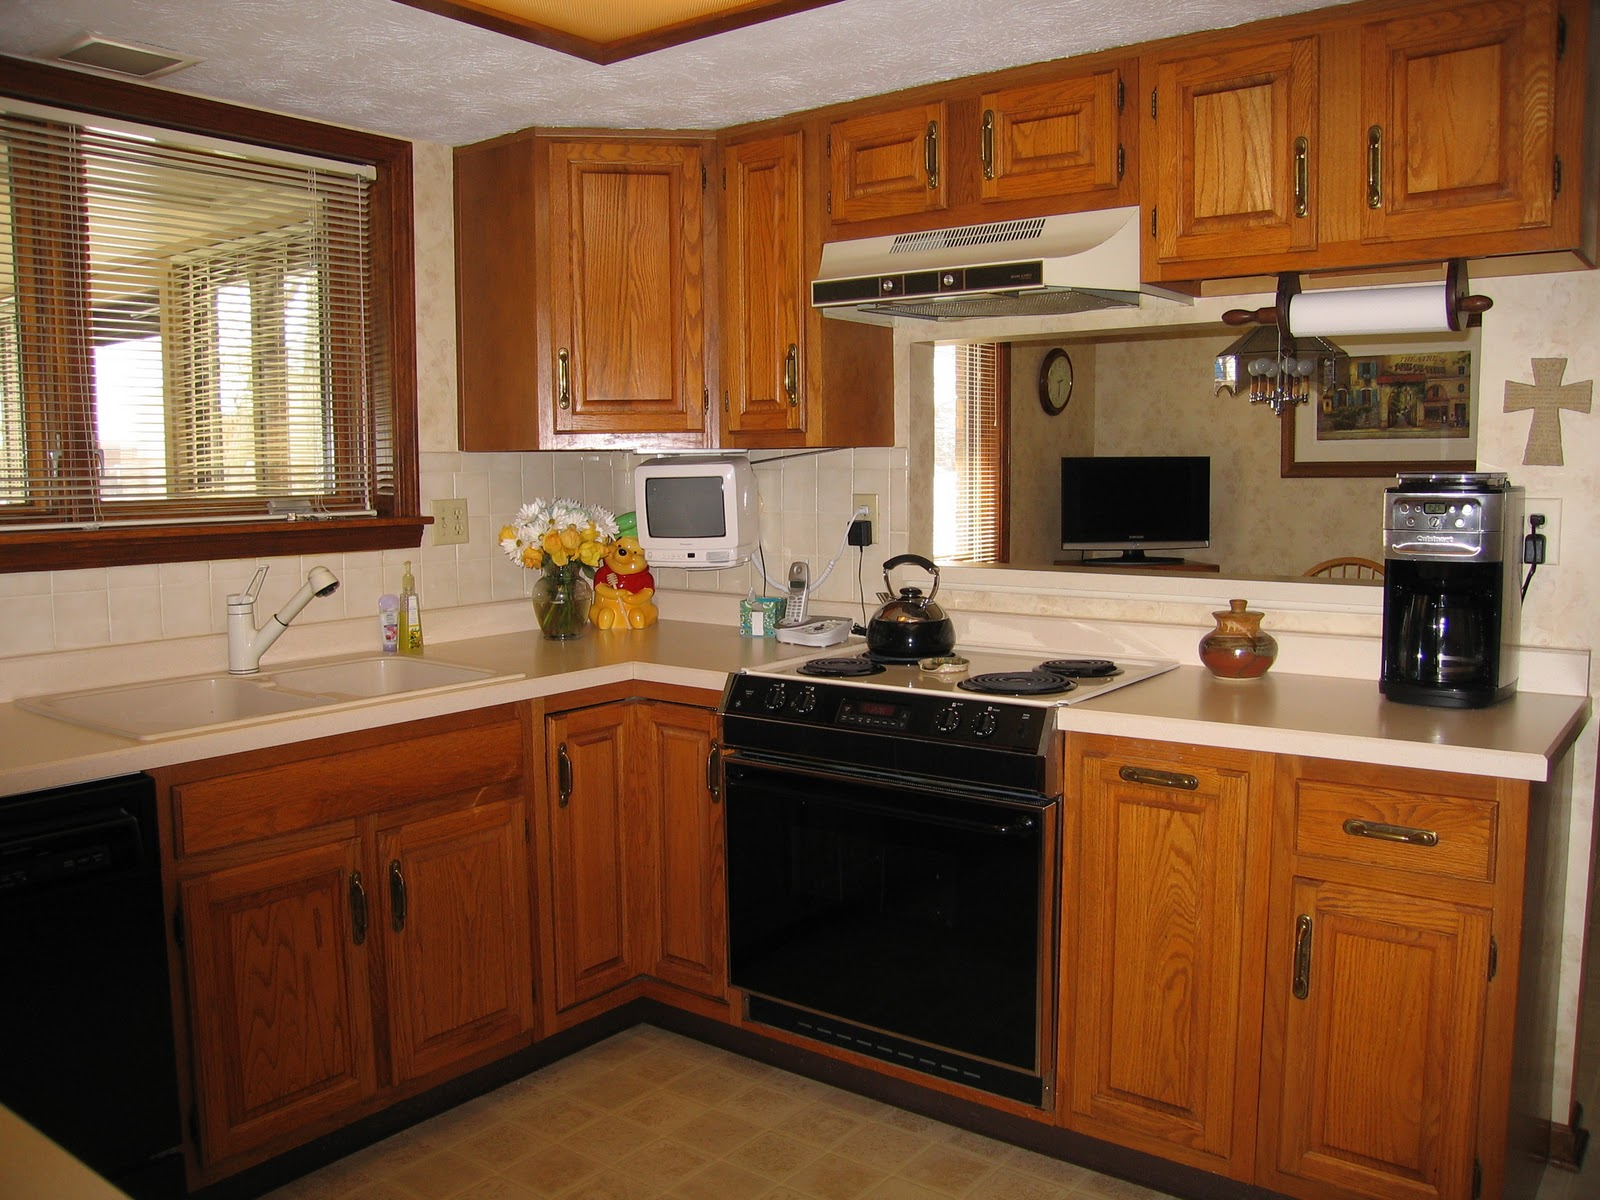 U Shaped Kitchen Complete With Oak Cabinets And Drop Ceiling